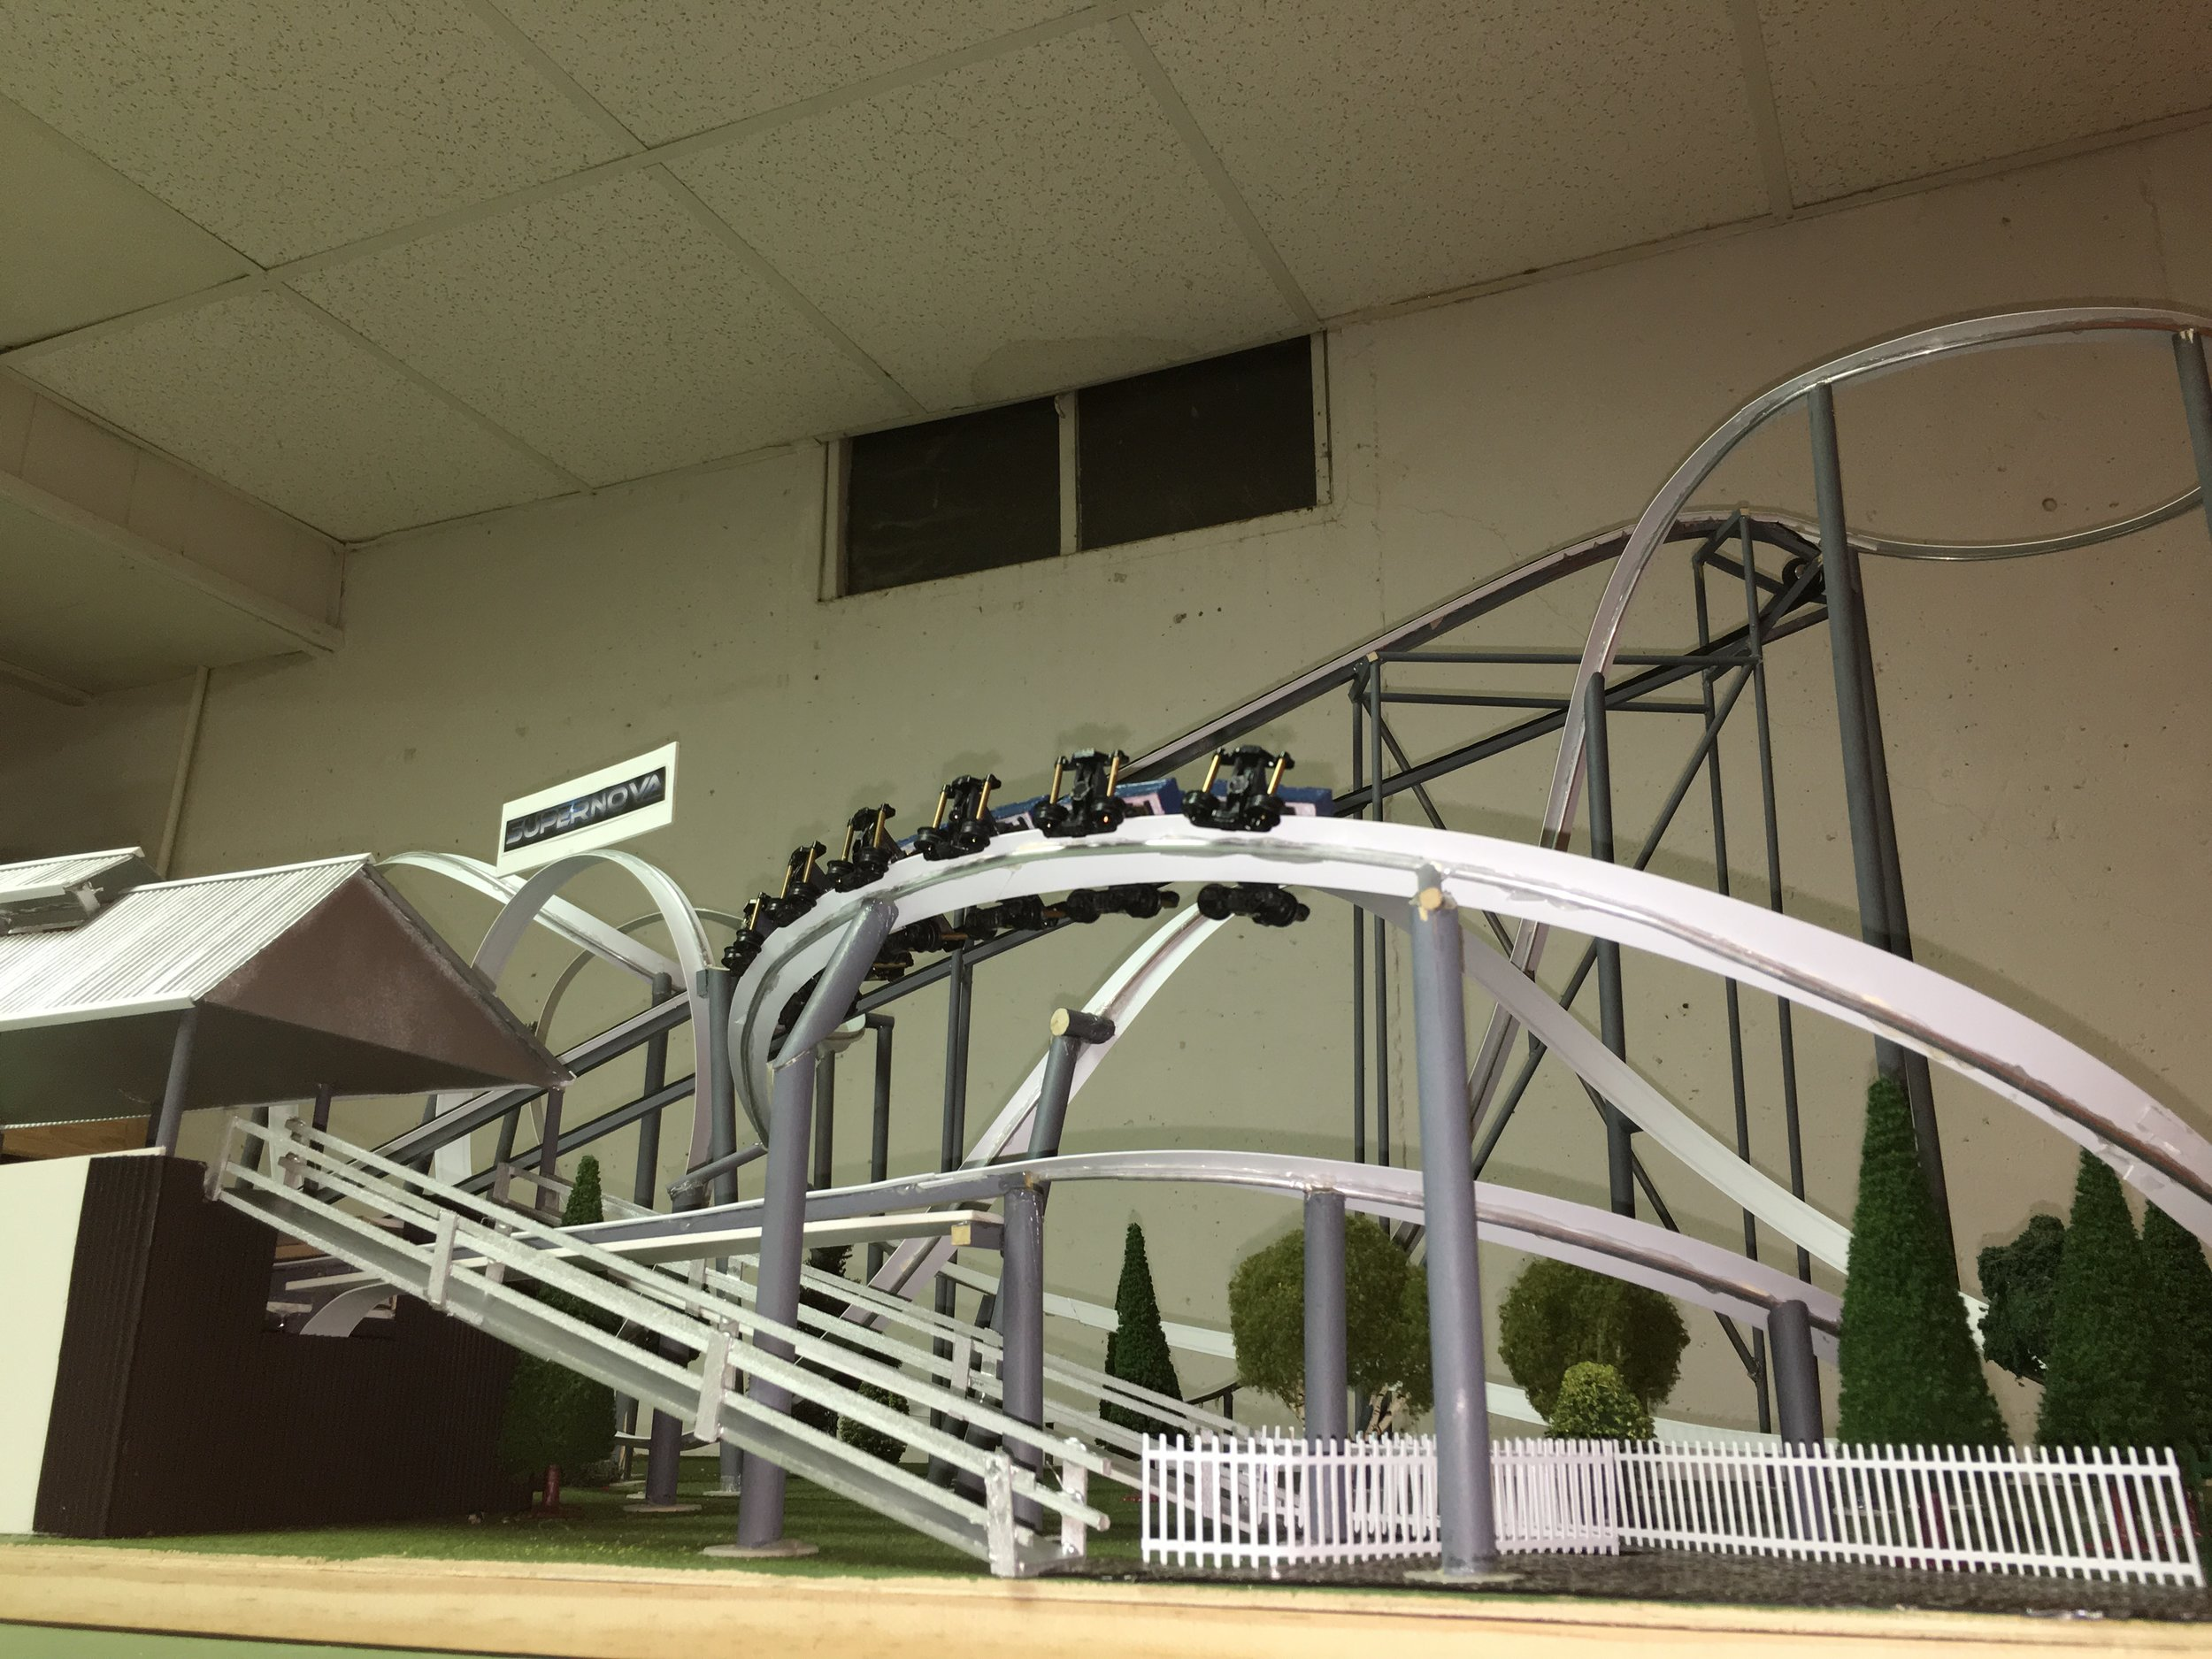 Helix showing wheel configuration under the track.